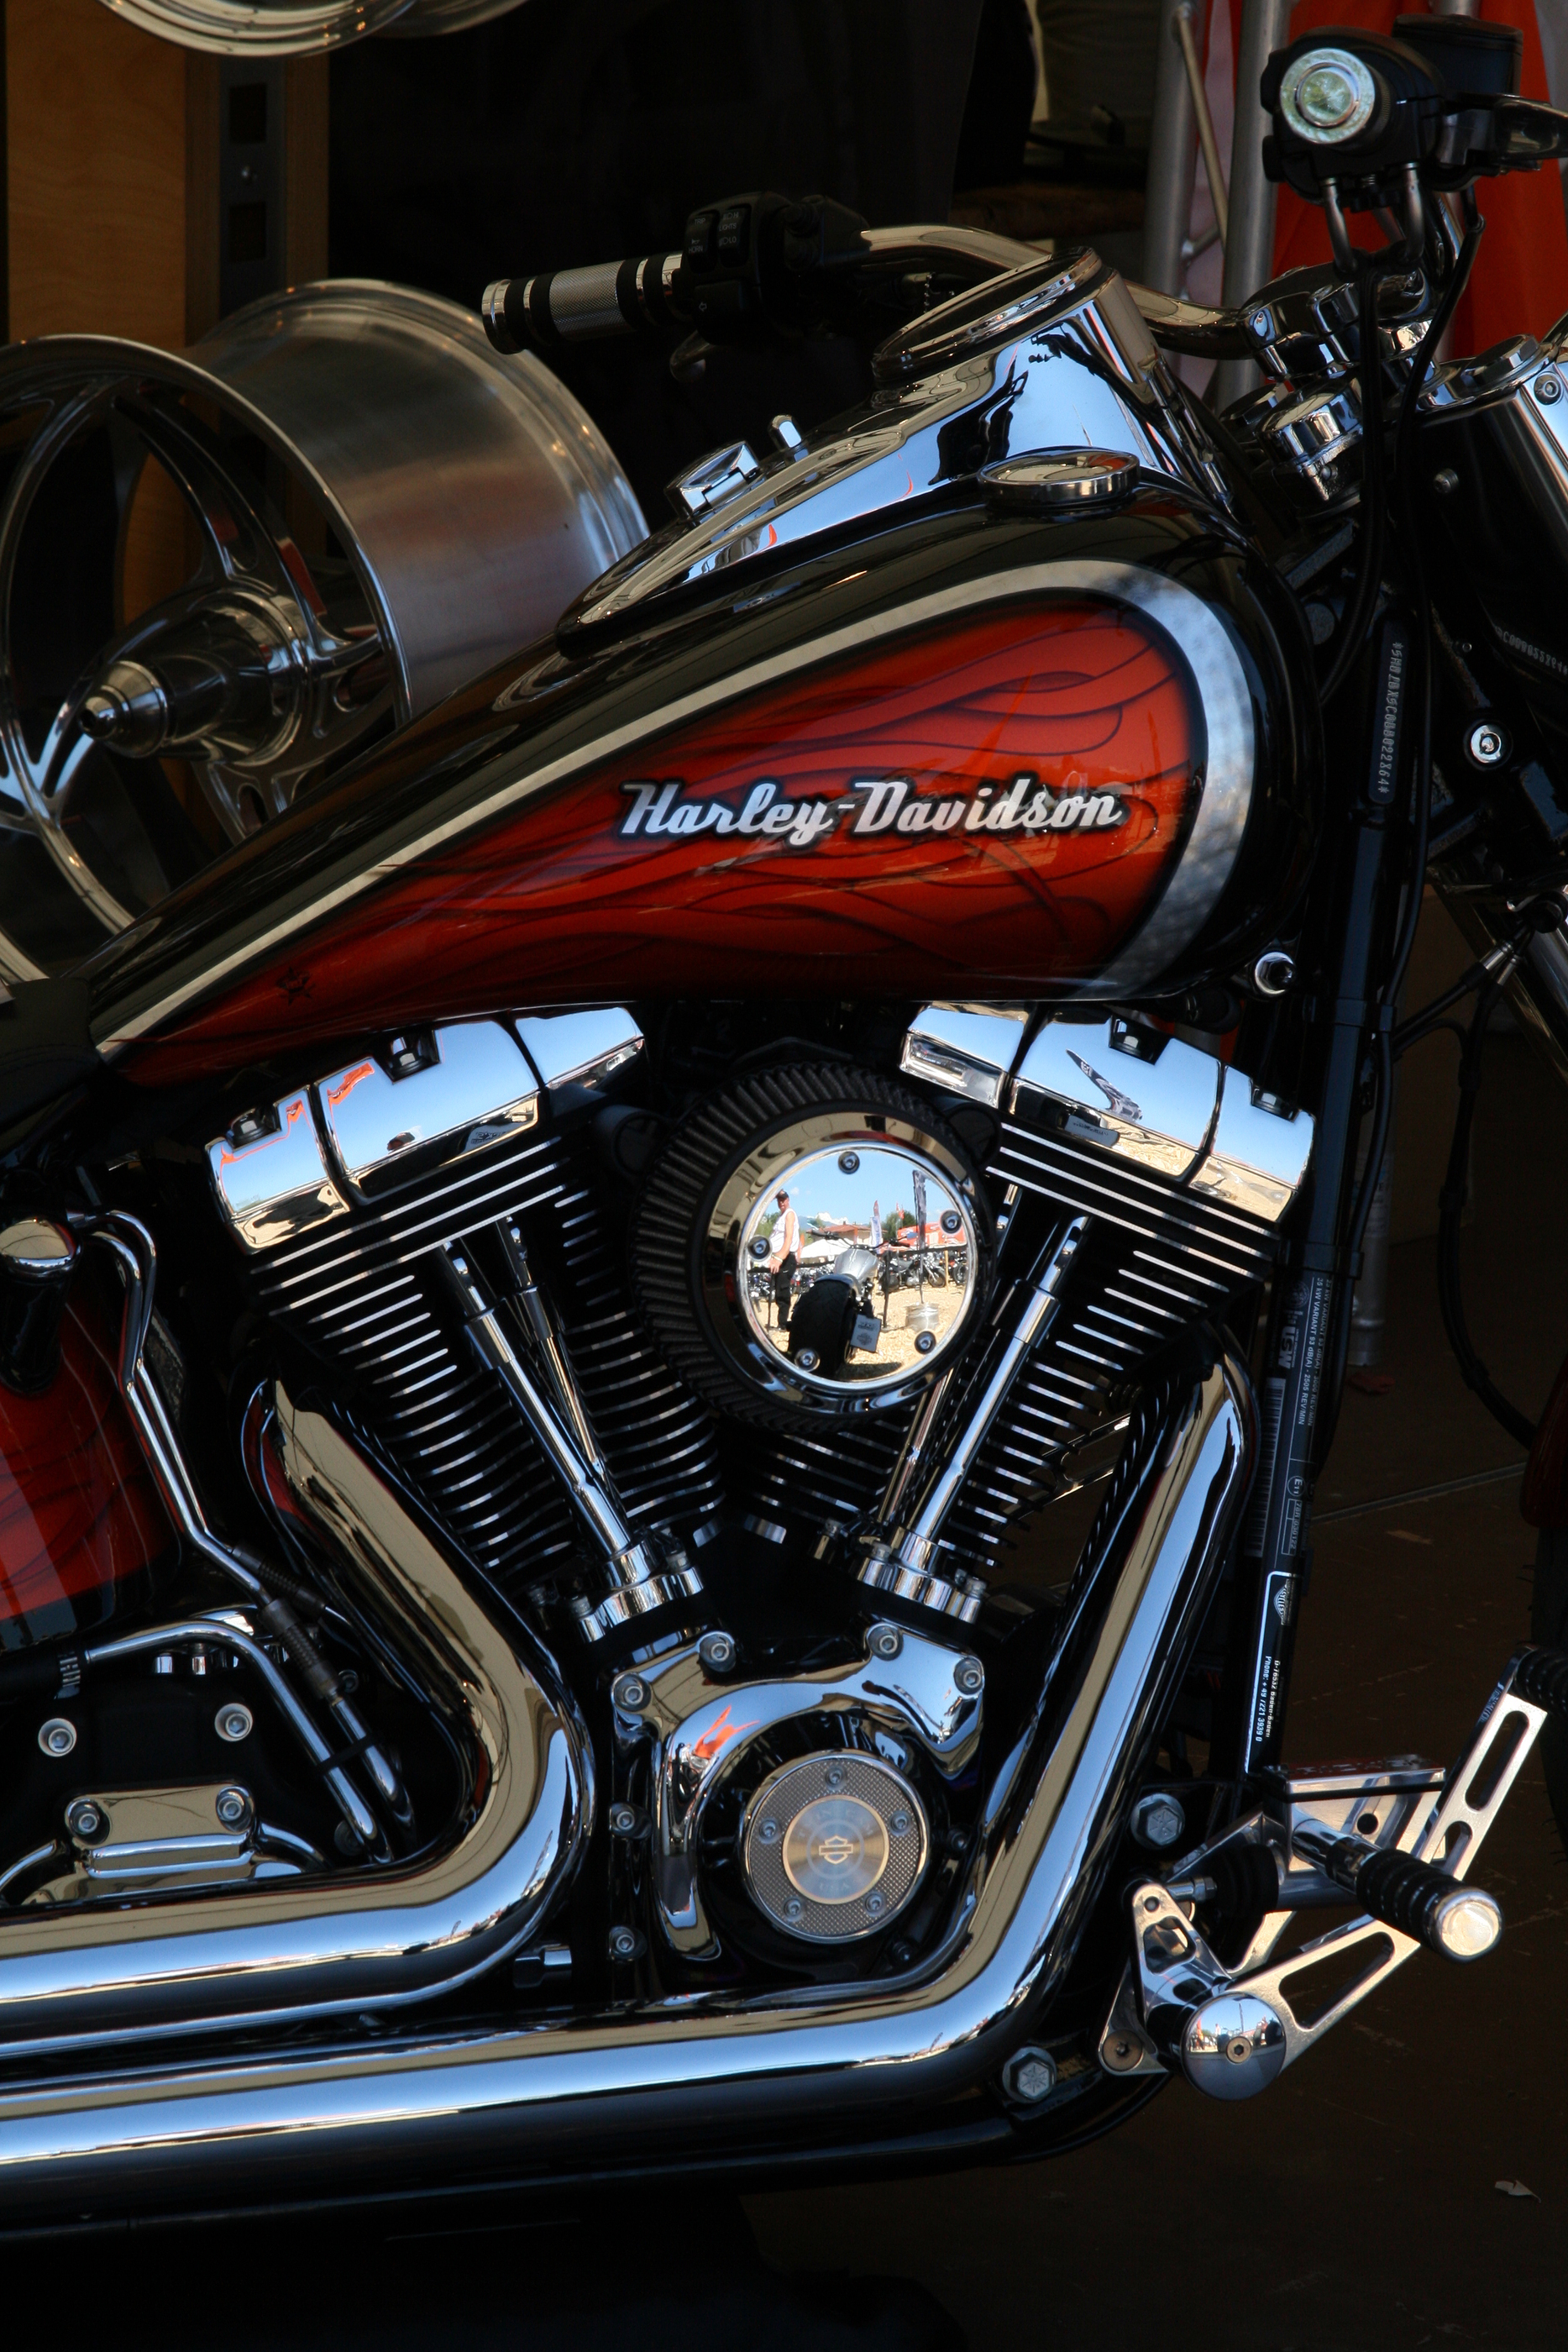 harley davidson motorcycles Harley-davidson® of tampa is a premium harley-davidson® motorcycle dealership located in tampa, fl we offer motorcycles from the various harley® families like touring, softail, dyna, sportster, street and more.